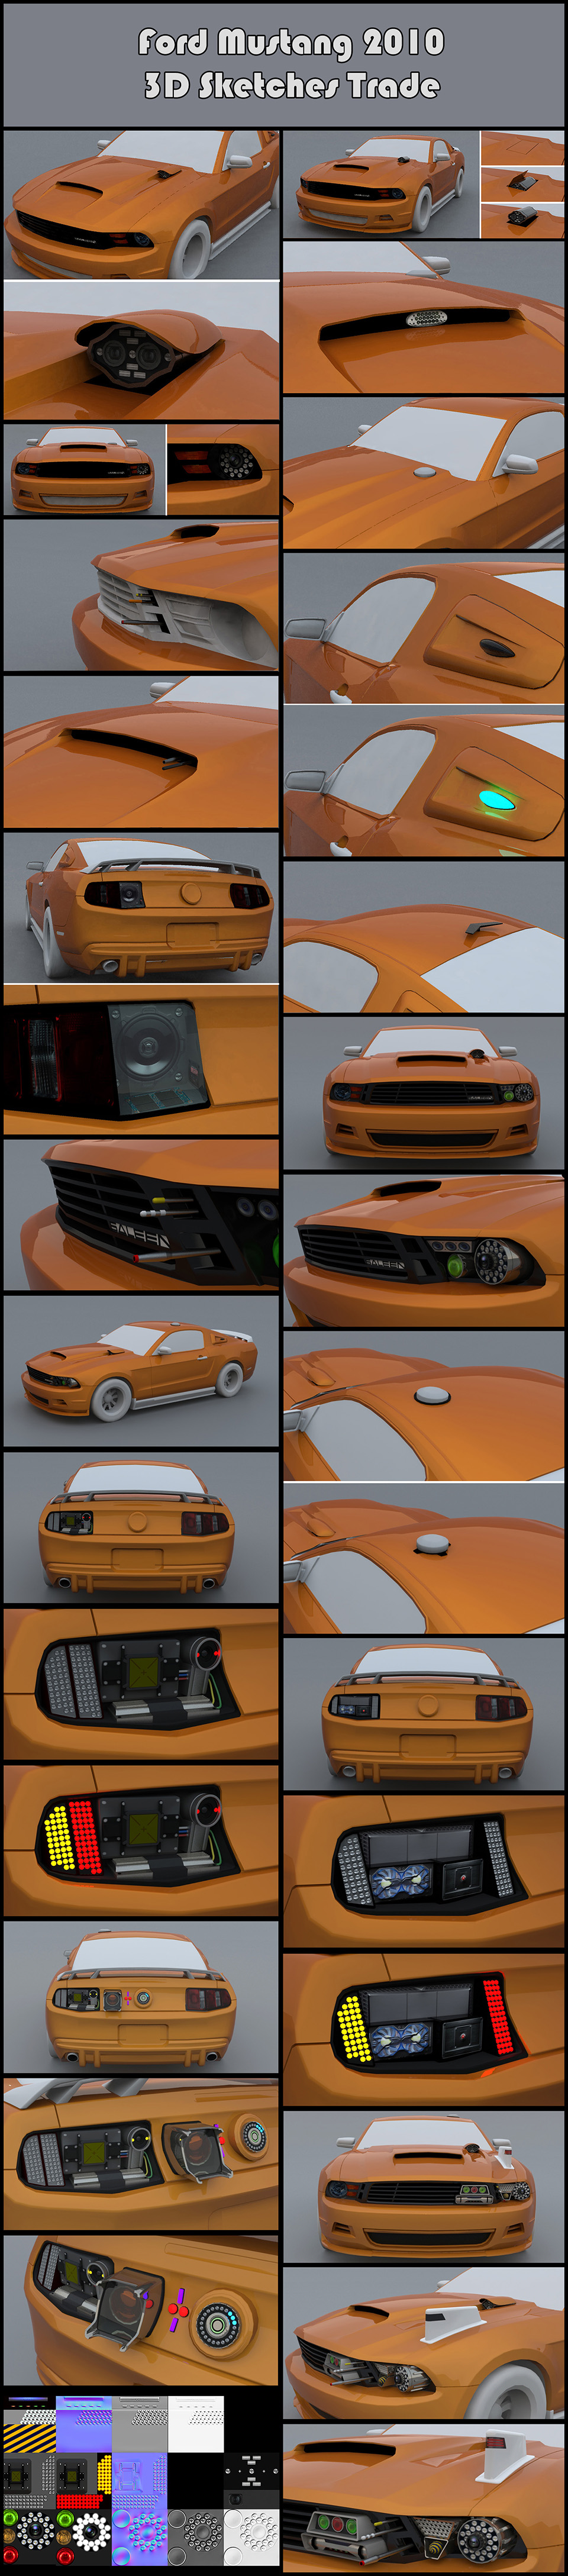 2012-12_The Crew_F.Beudin_Mustang-2010_Trade_3D-SKETCHES